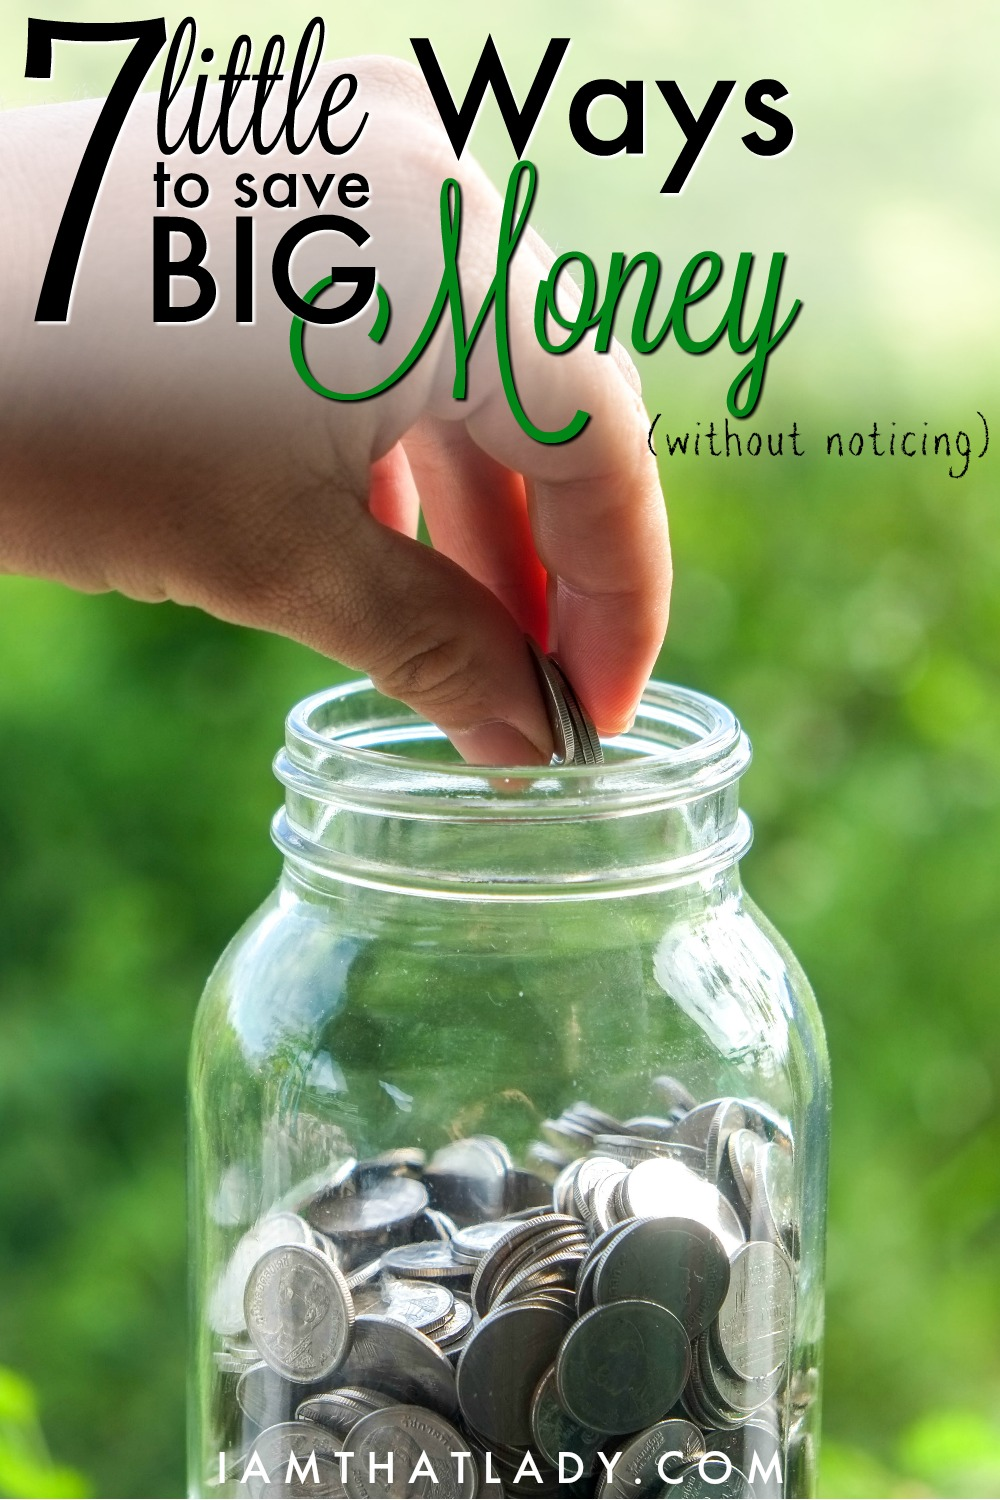 7 little ways to save big money without noticing